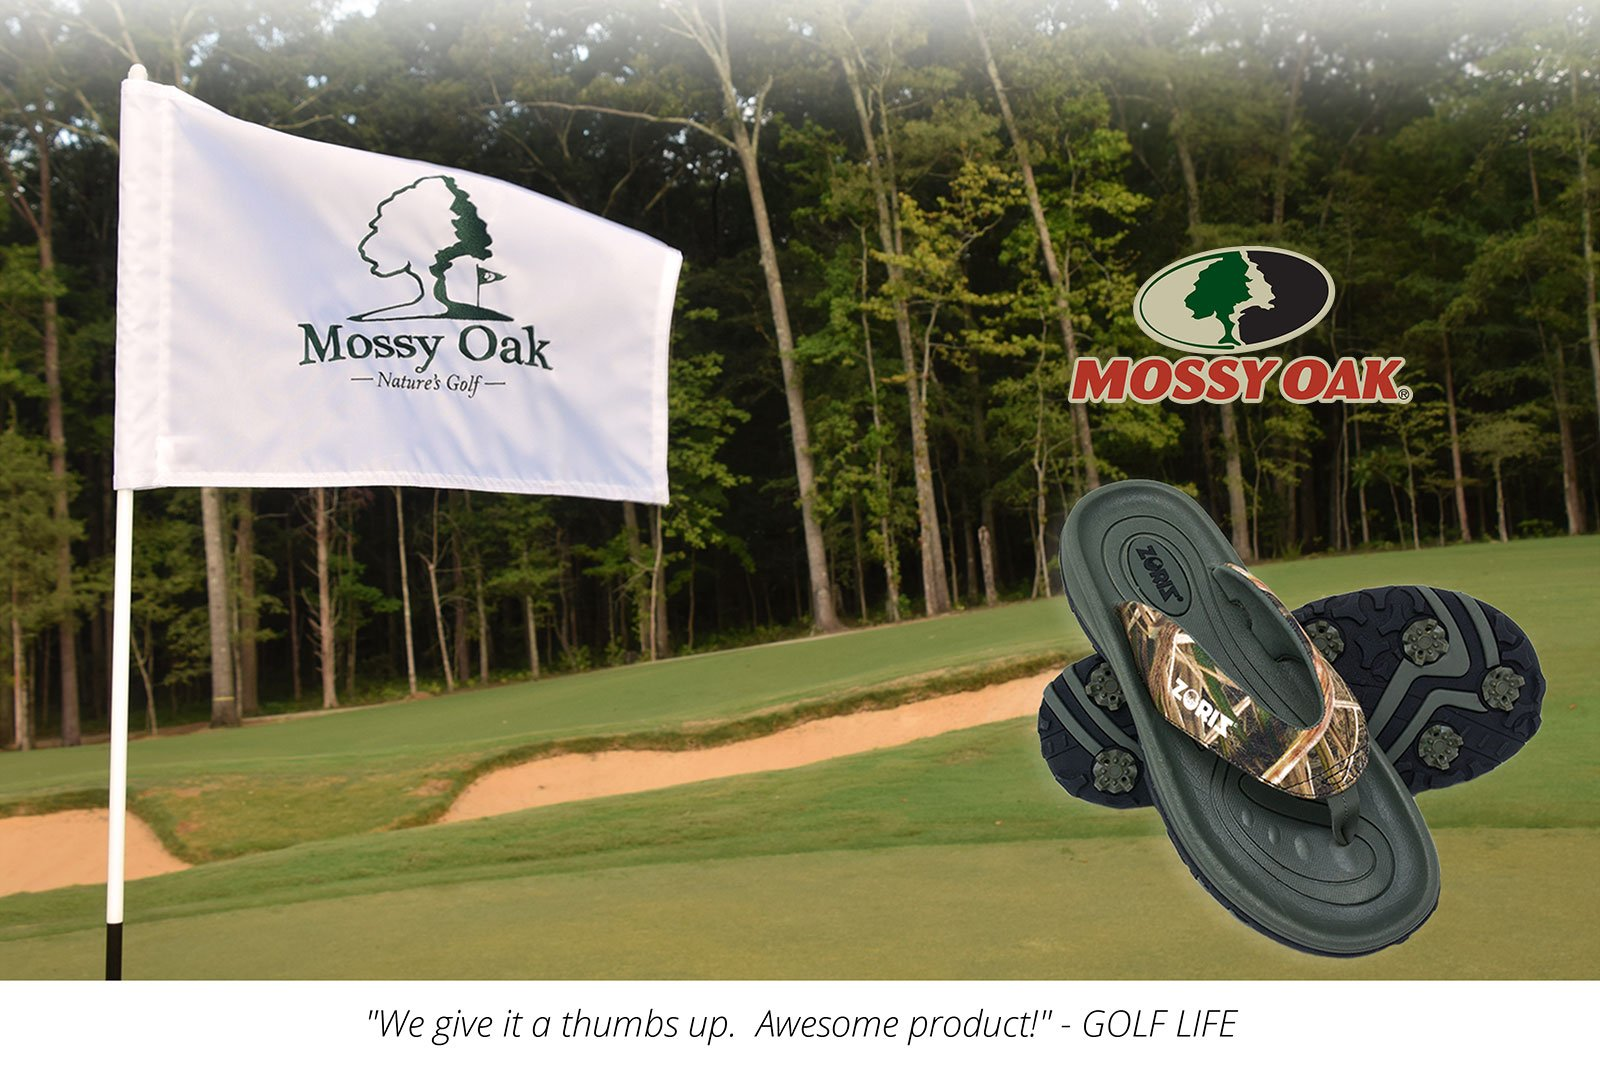 Mossy Oak Golf Sandals, Zoriz Golf Shoes